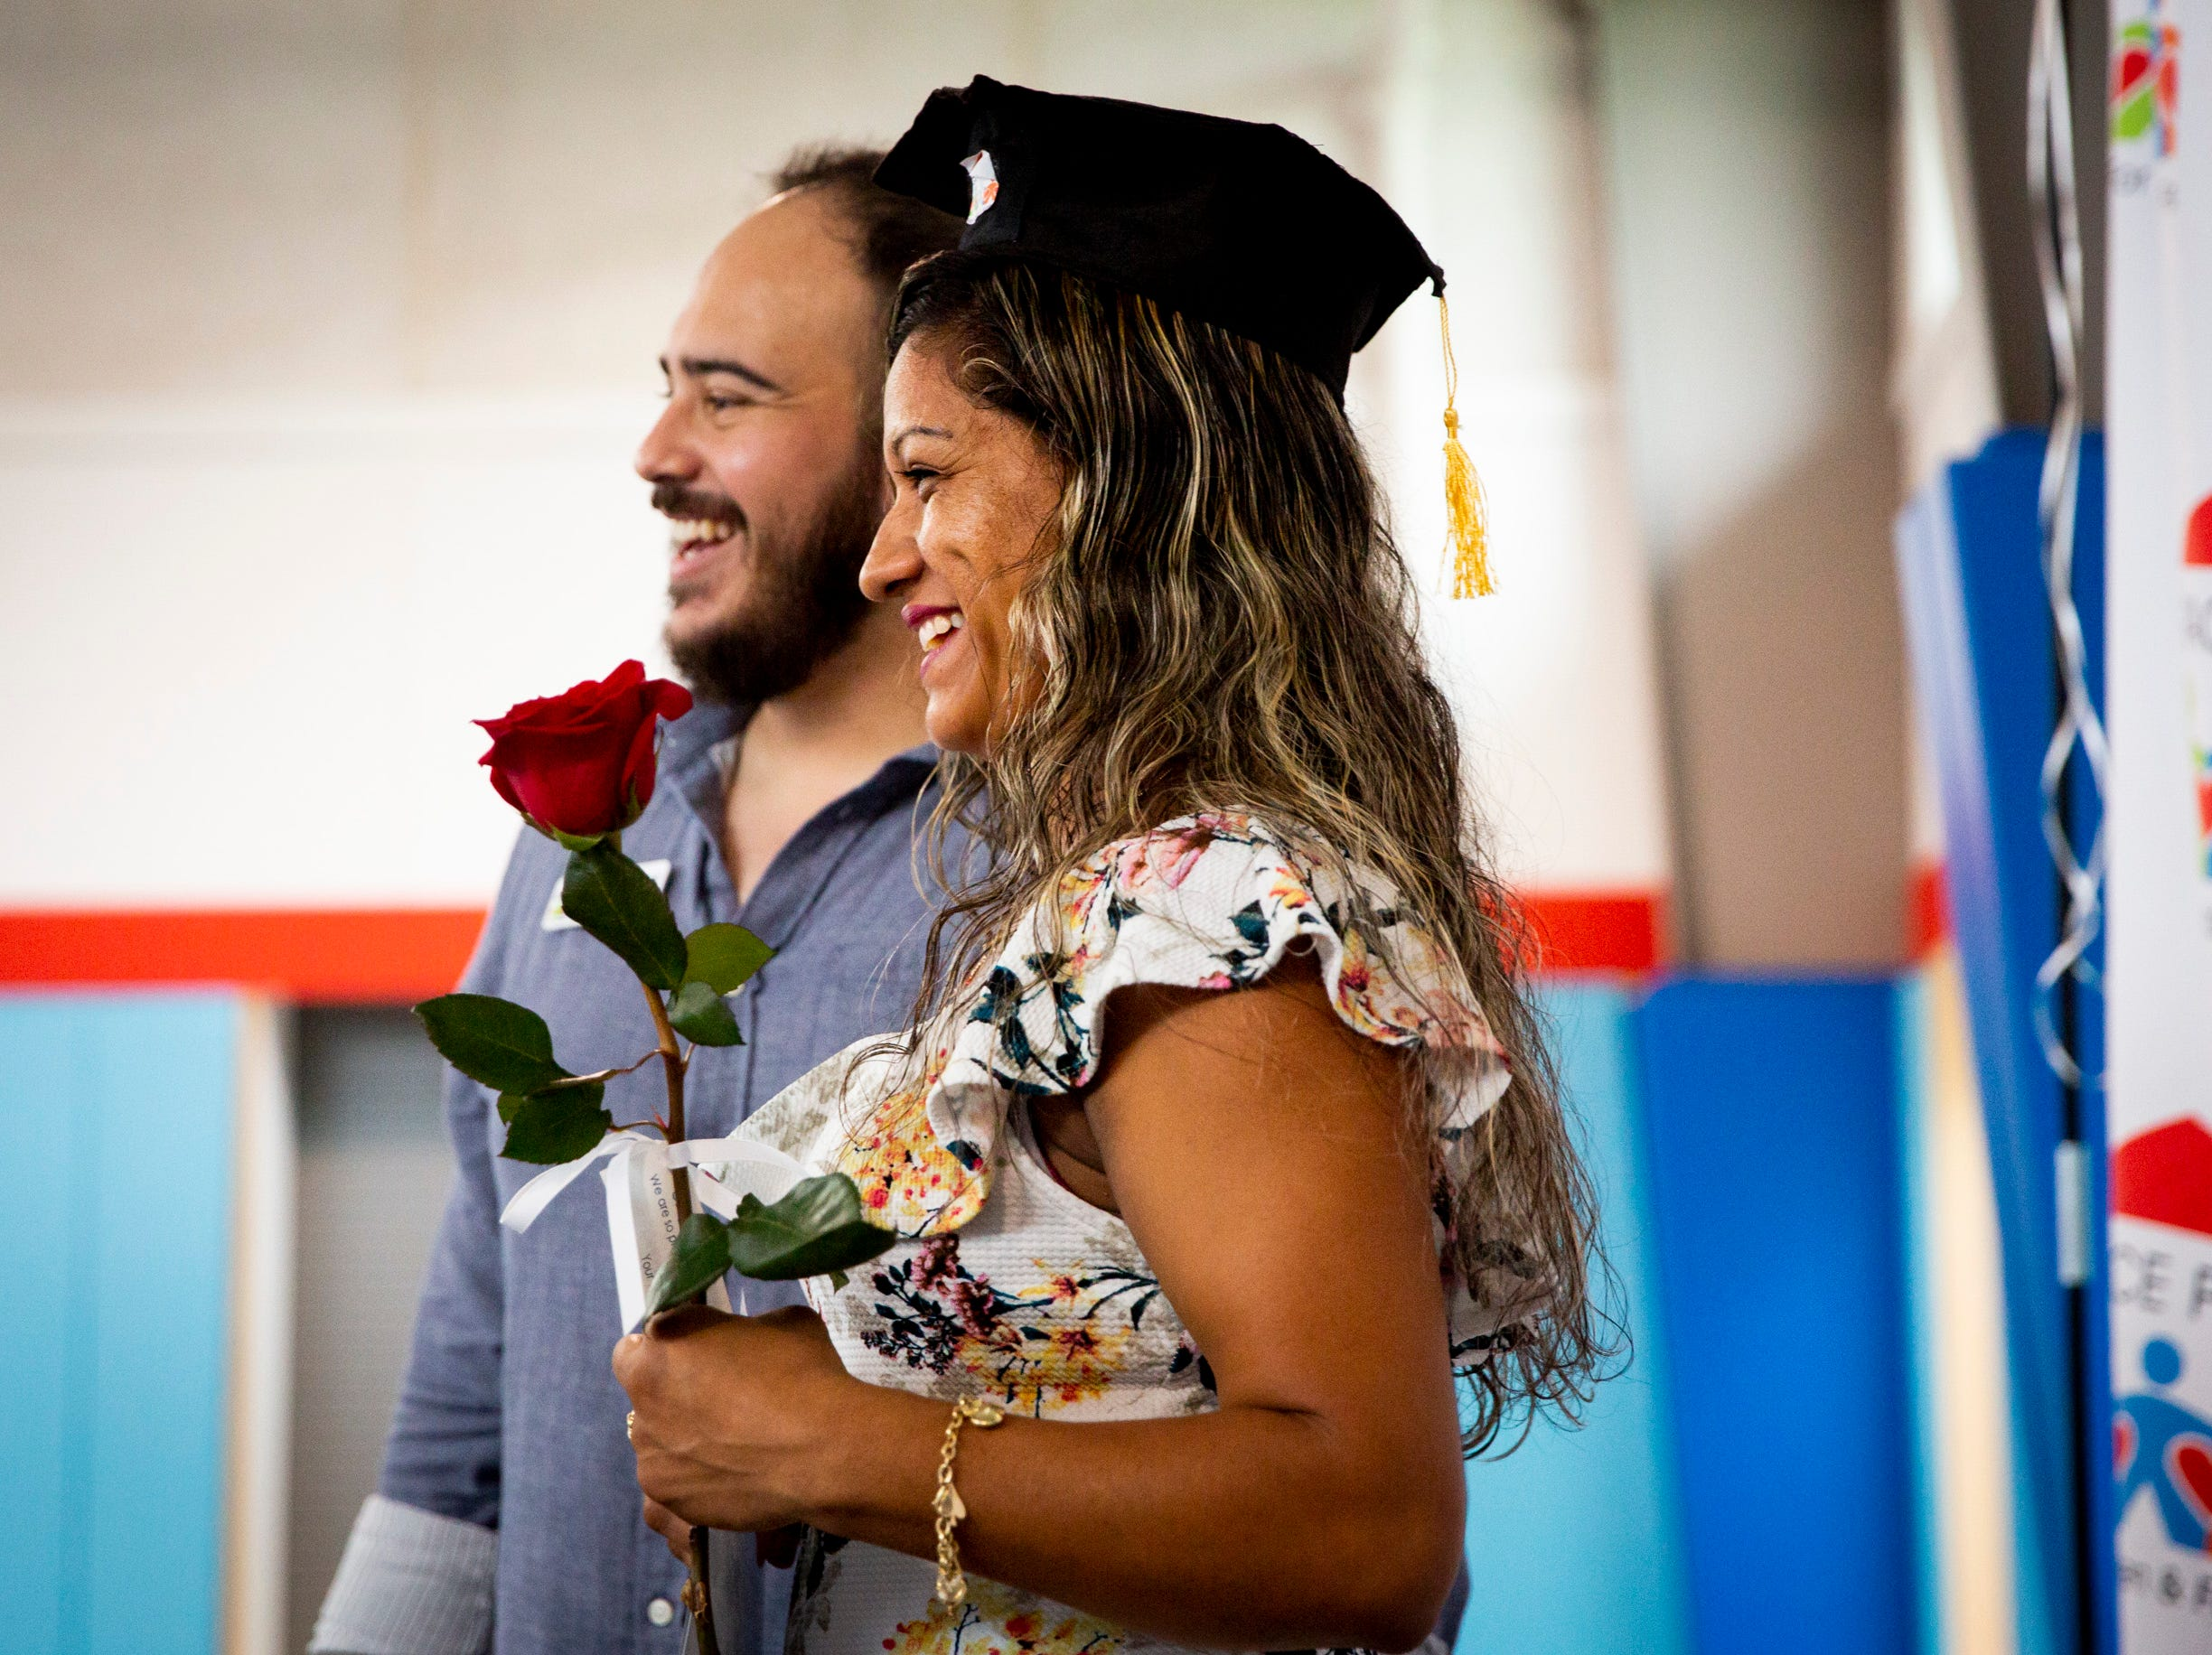 Emma Mireles, right, smiles as she poses for a photo with Oscar Rodriguez during the Bright Beginnings family literacy program graduation at Grace Place in Golden Gate on Wednesday, May 15, 2019.